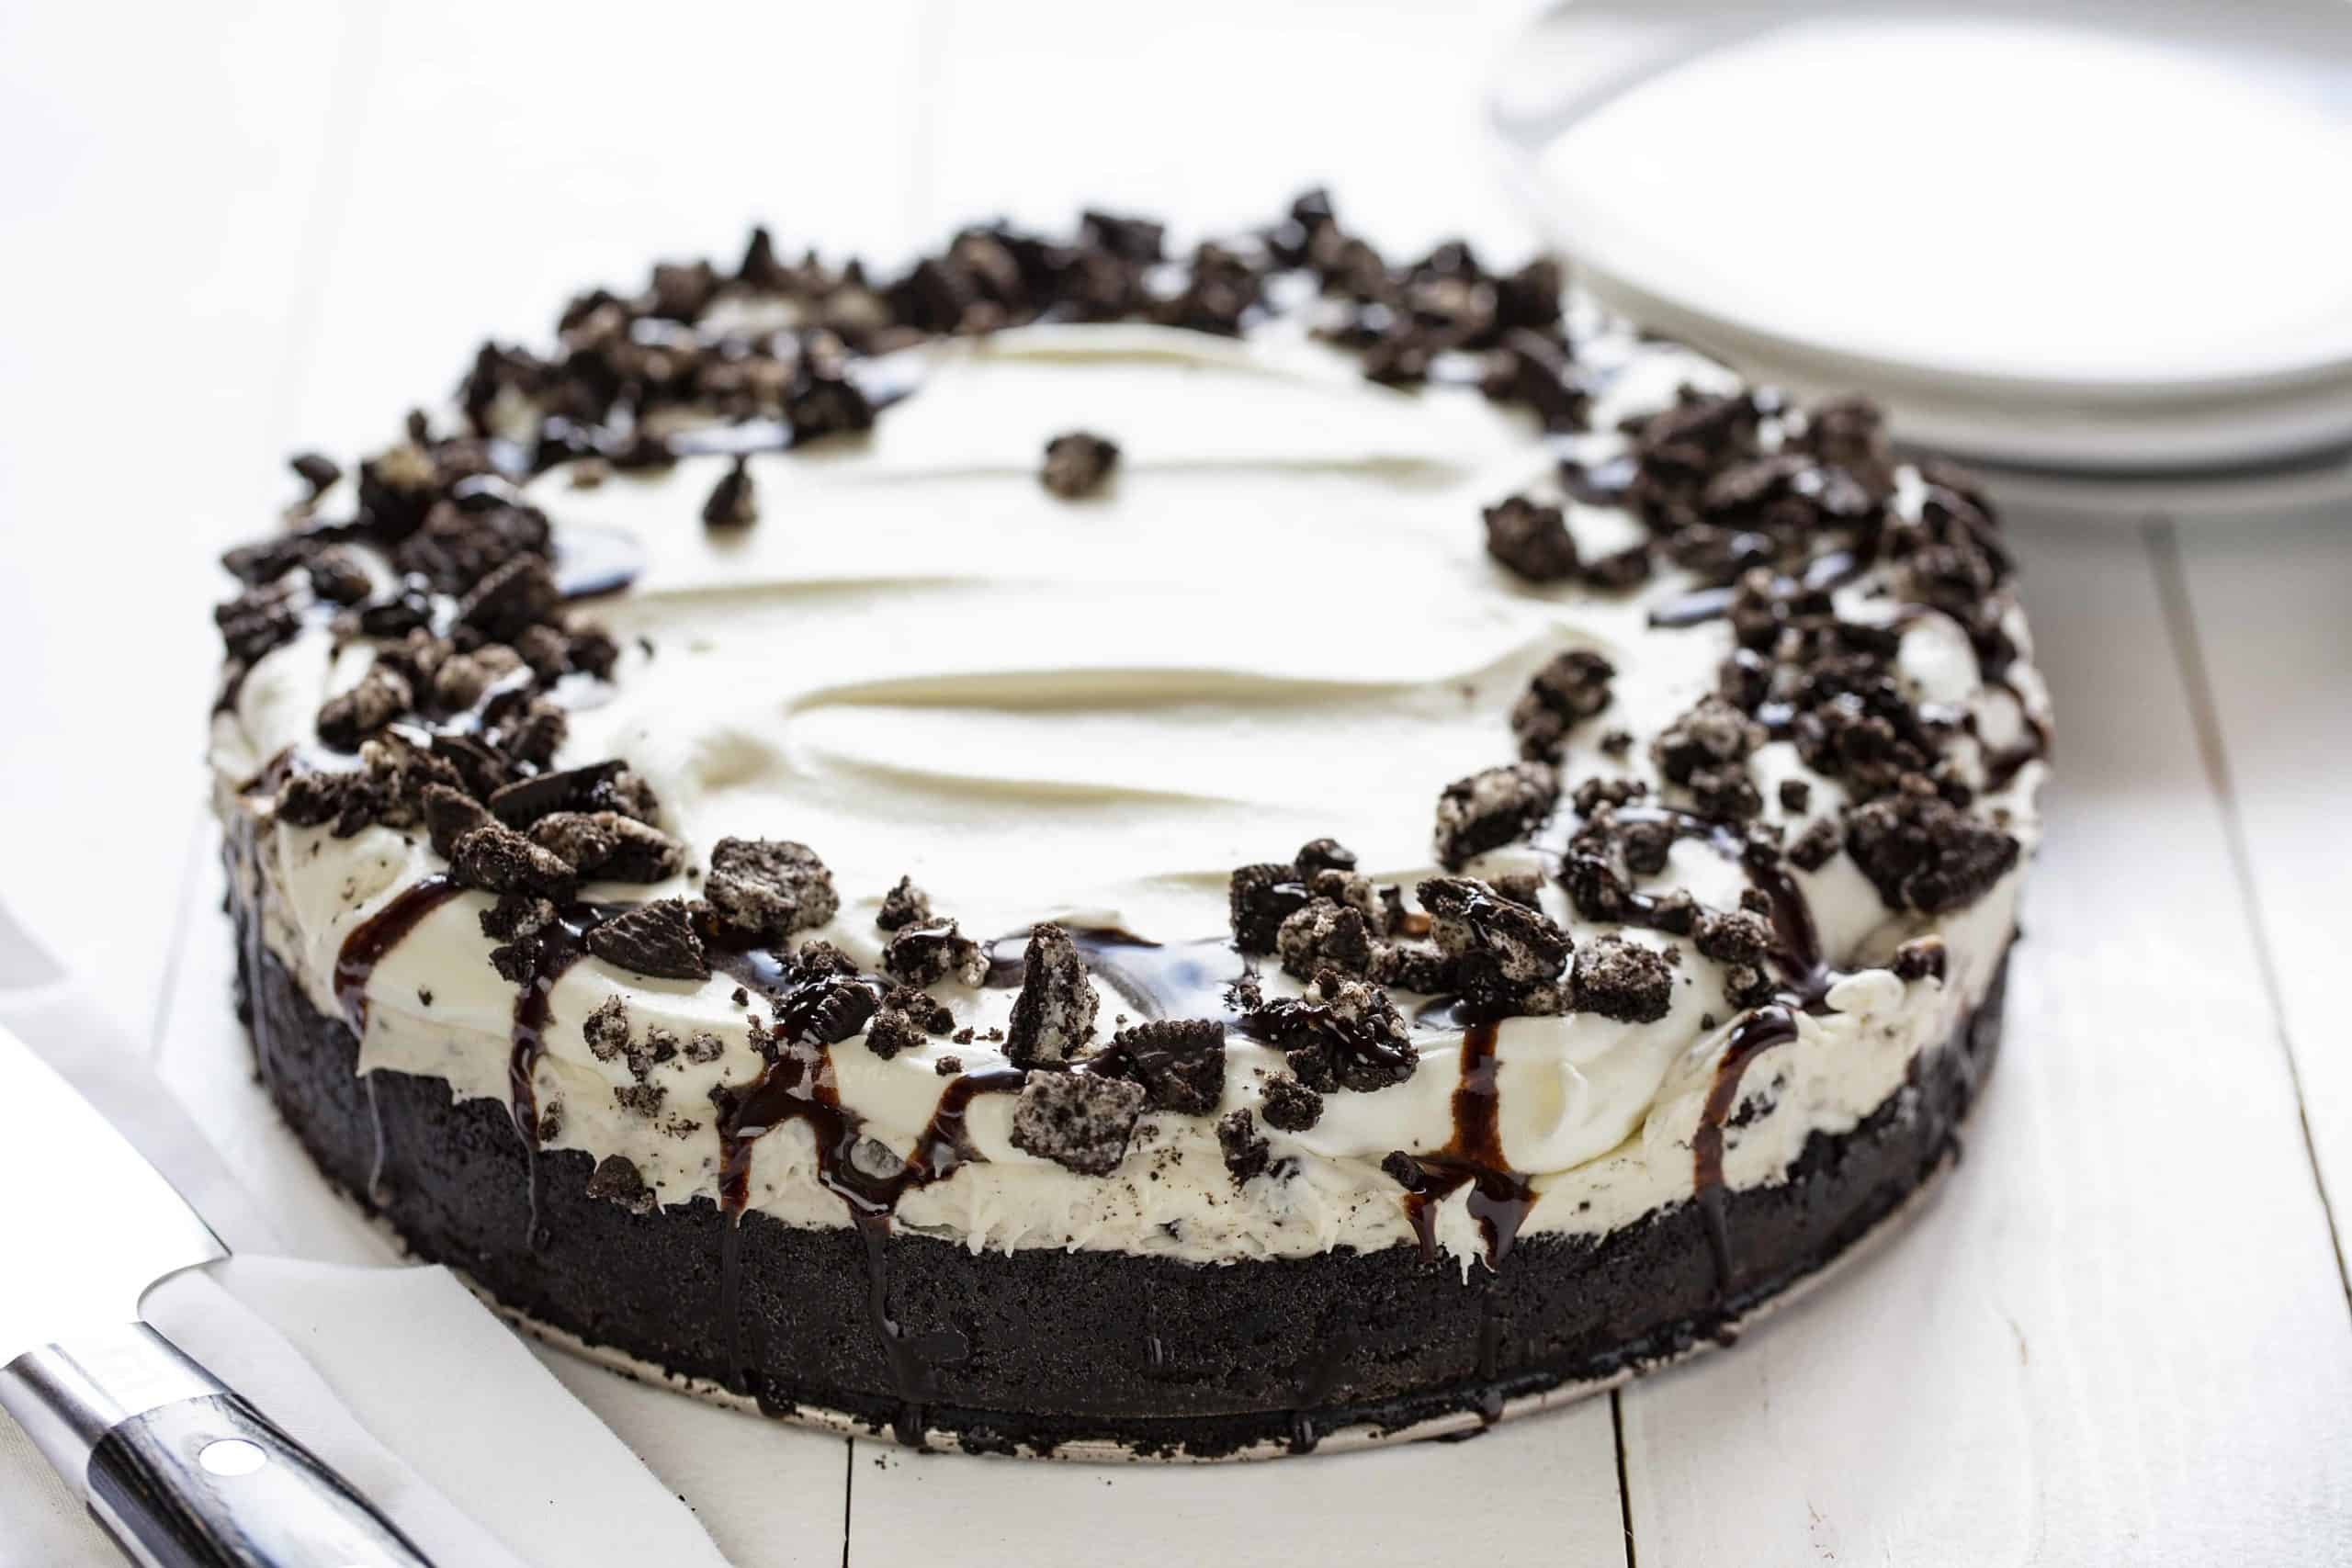 Full, Uncut No Bake Oreo Cheesecake on Table